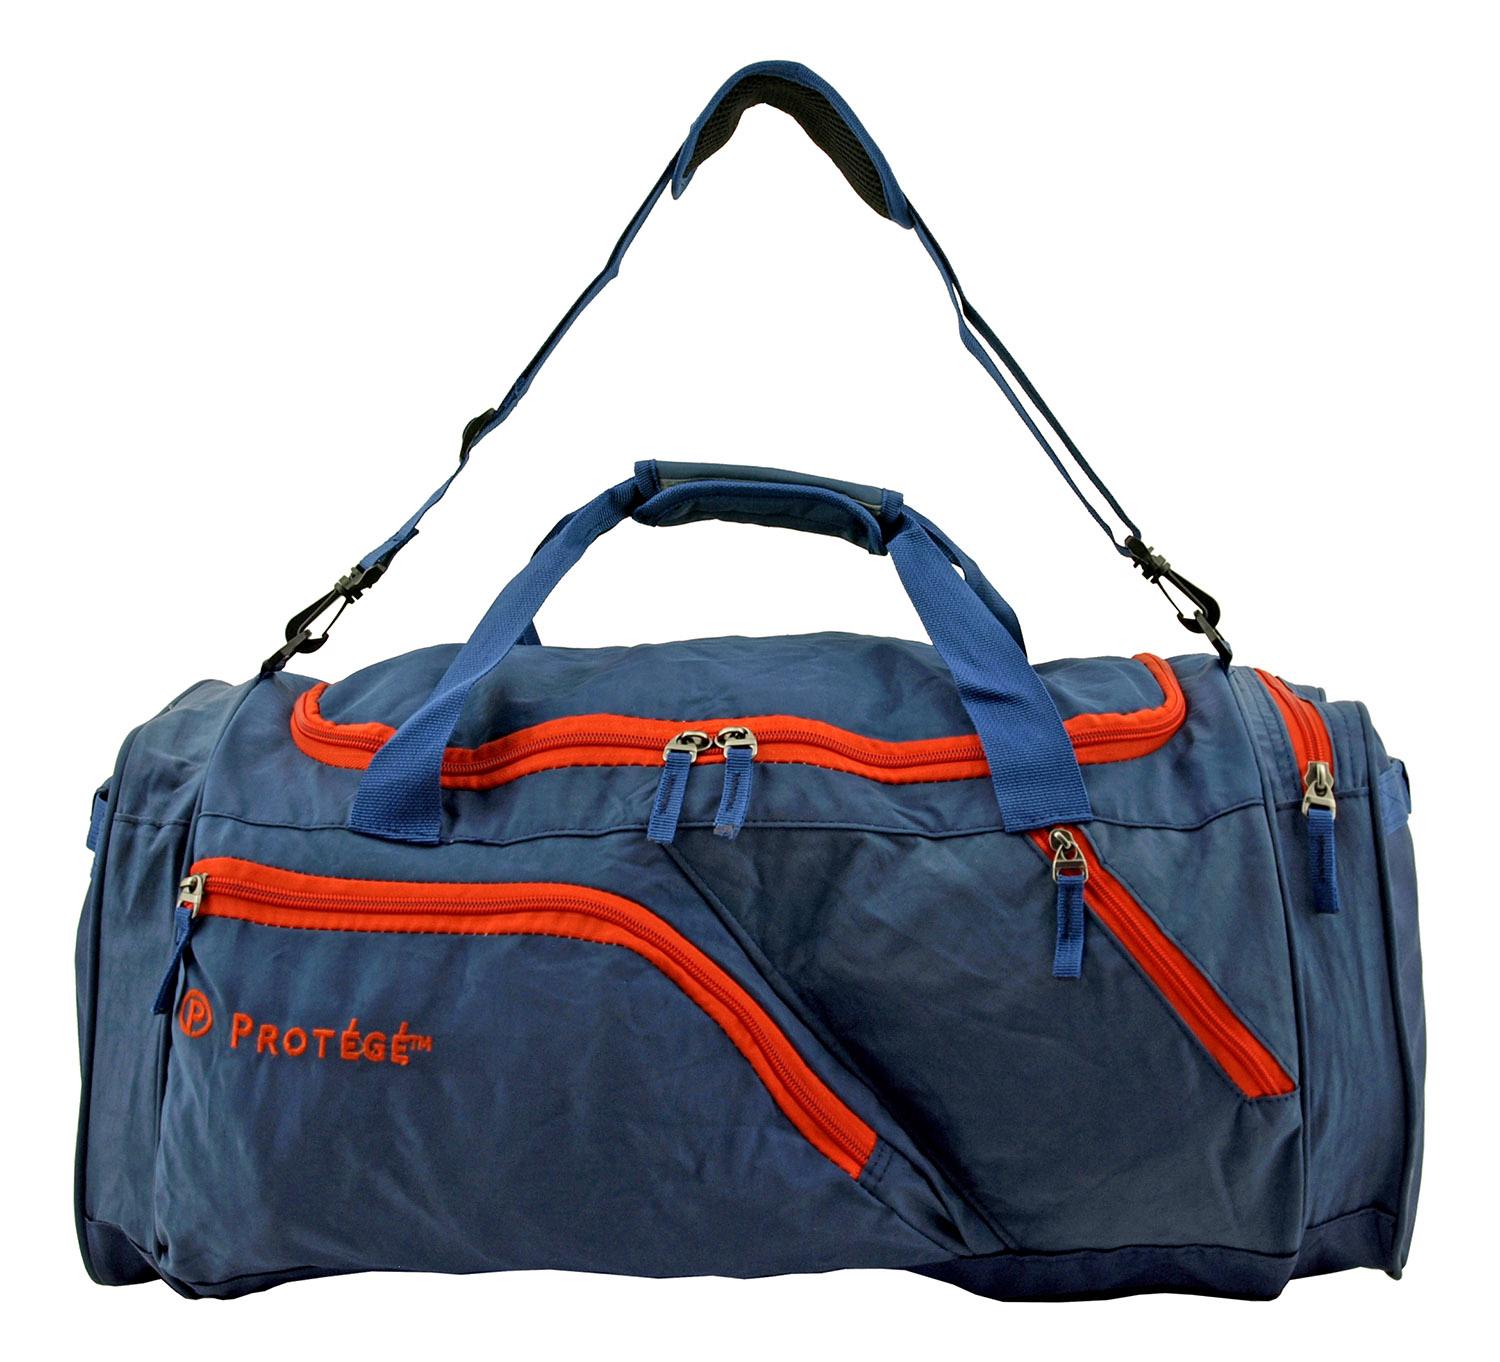 25 in Protégé Carry On Travel Duffel Bag - Blue and Red